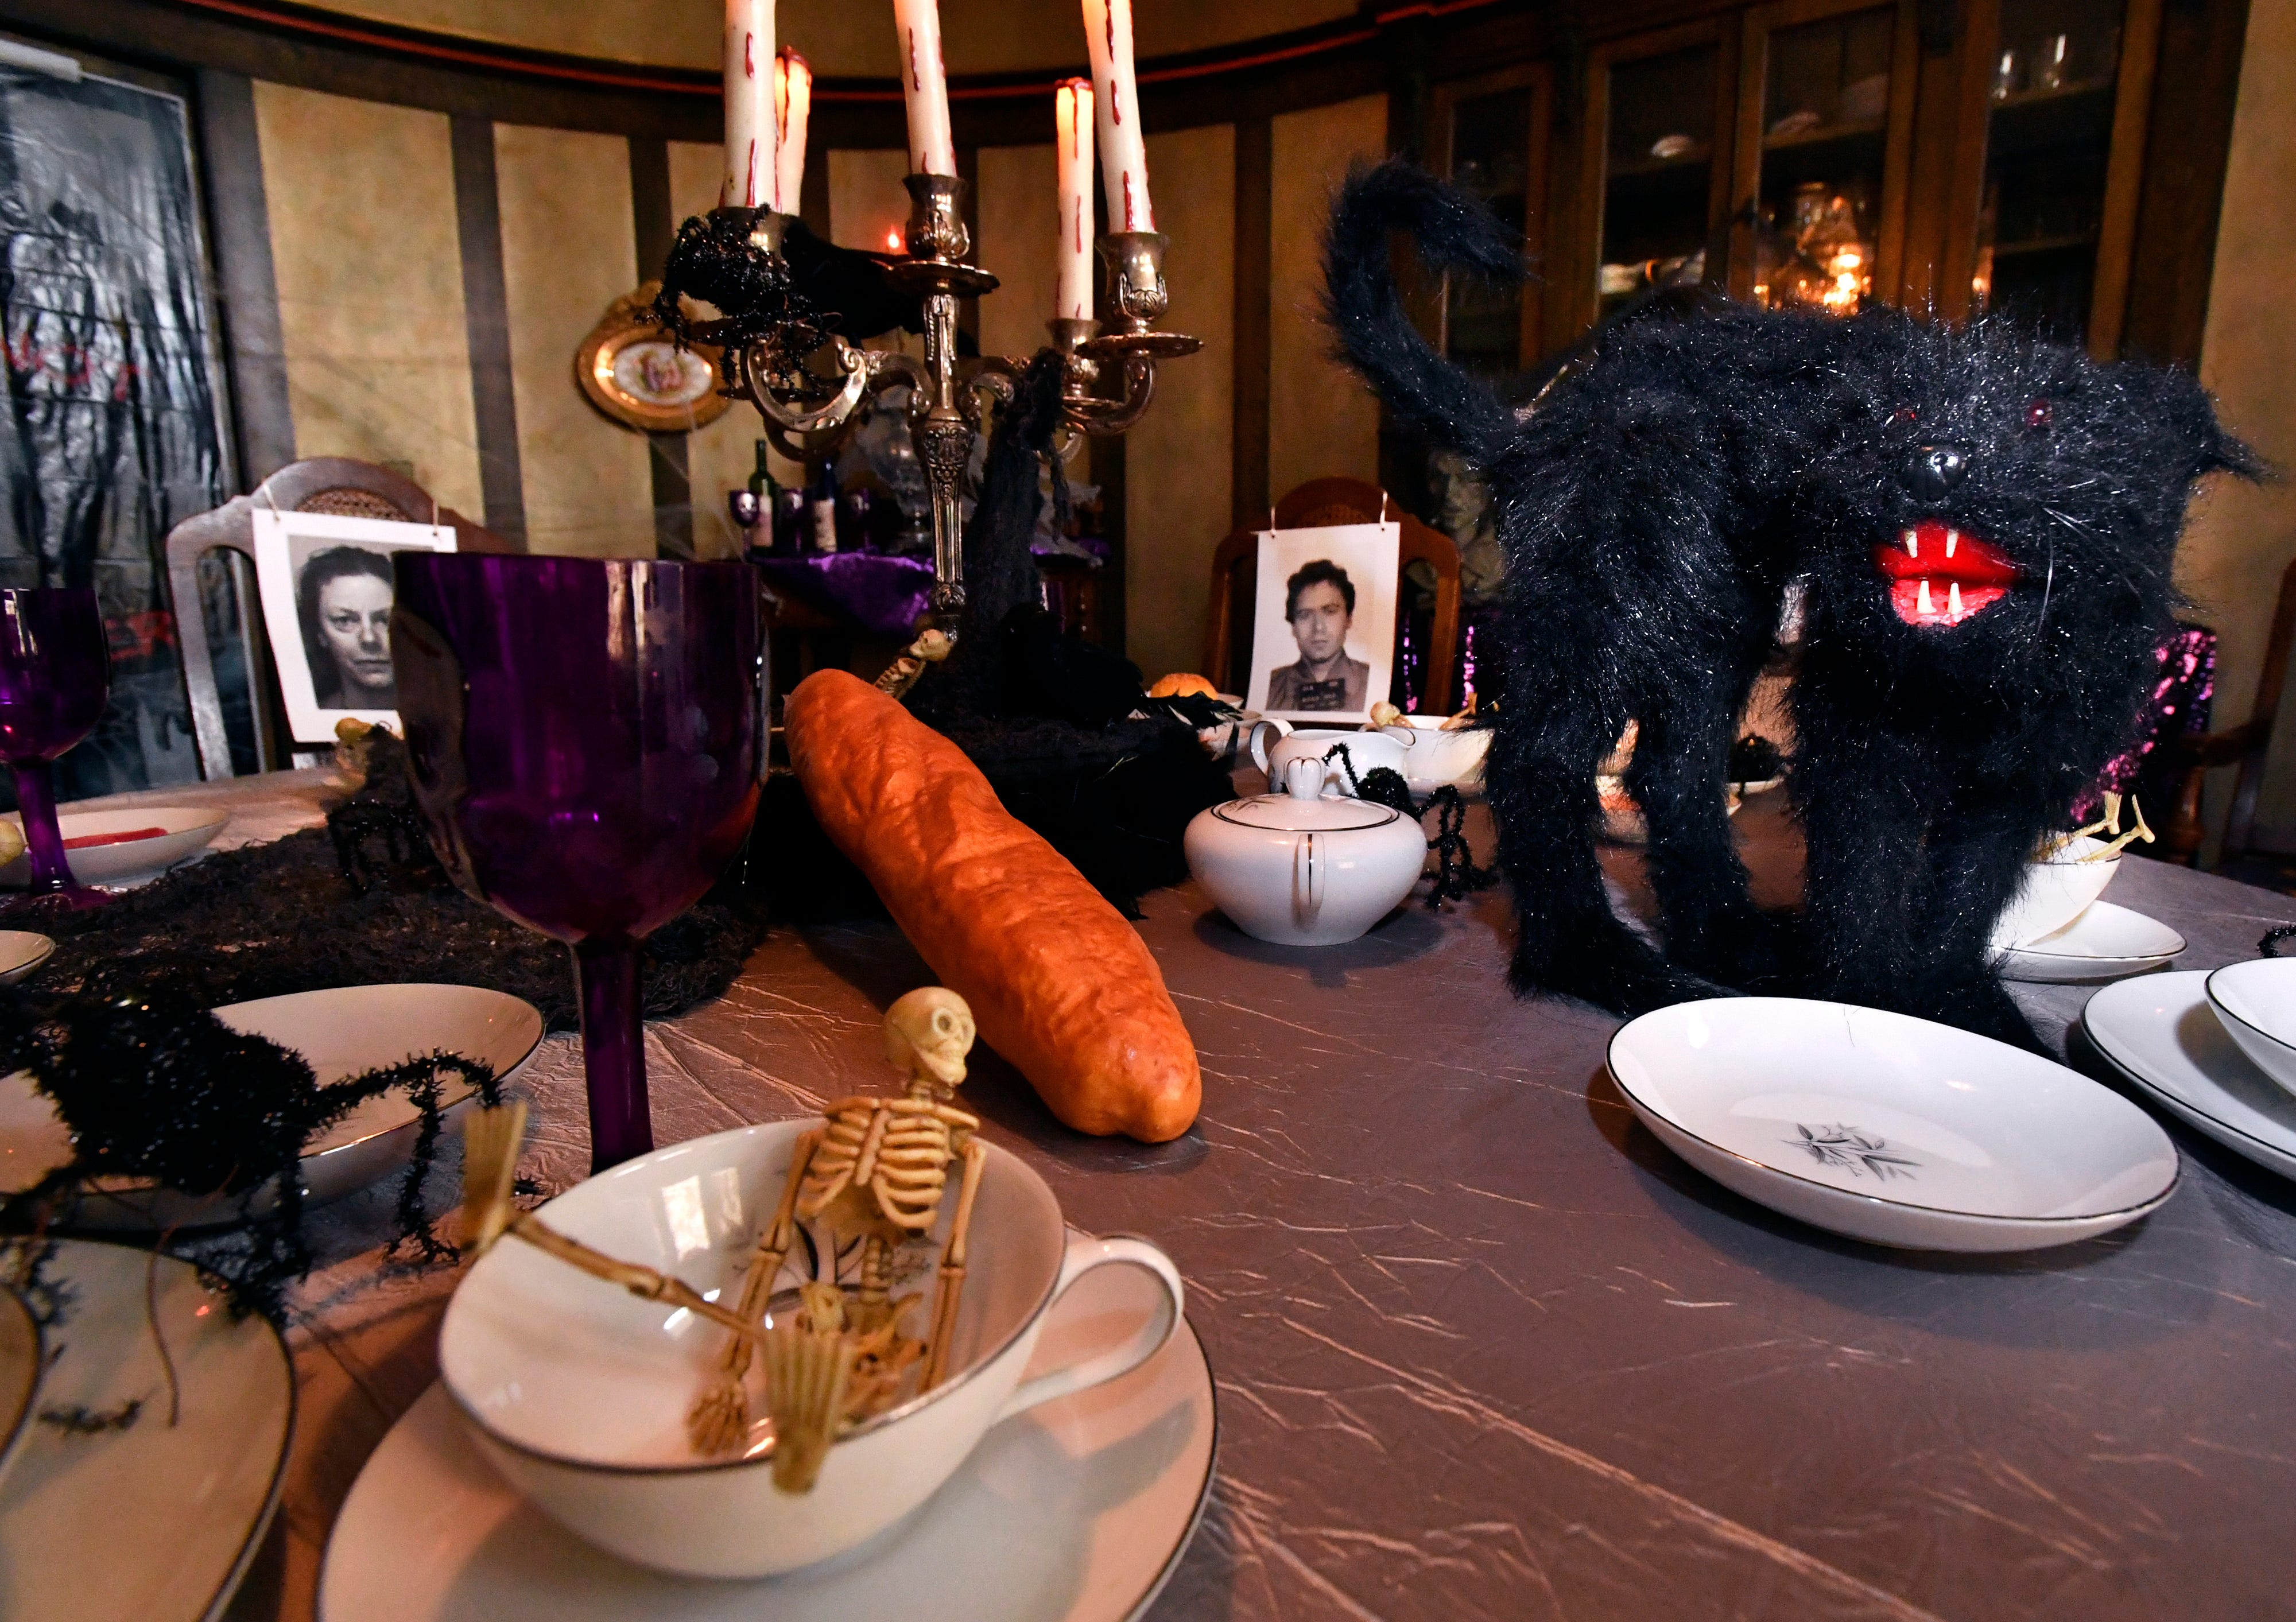 The dining room table is decorated with spooky creatures and the mug shots of serial killers at the Swenson House Wednesday for Halloween.